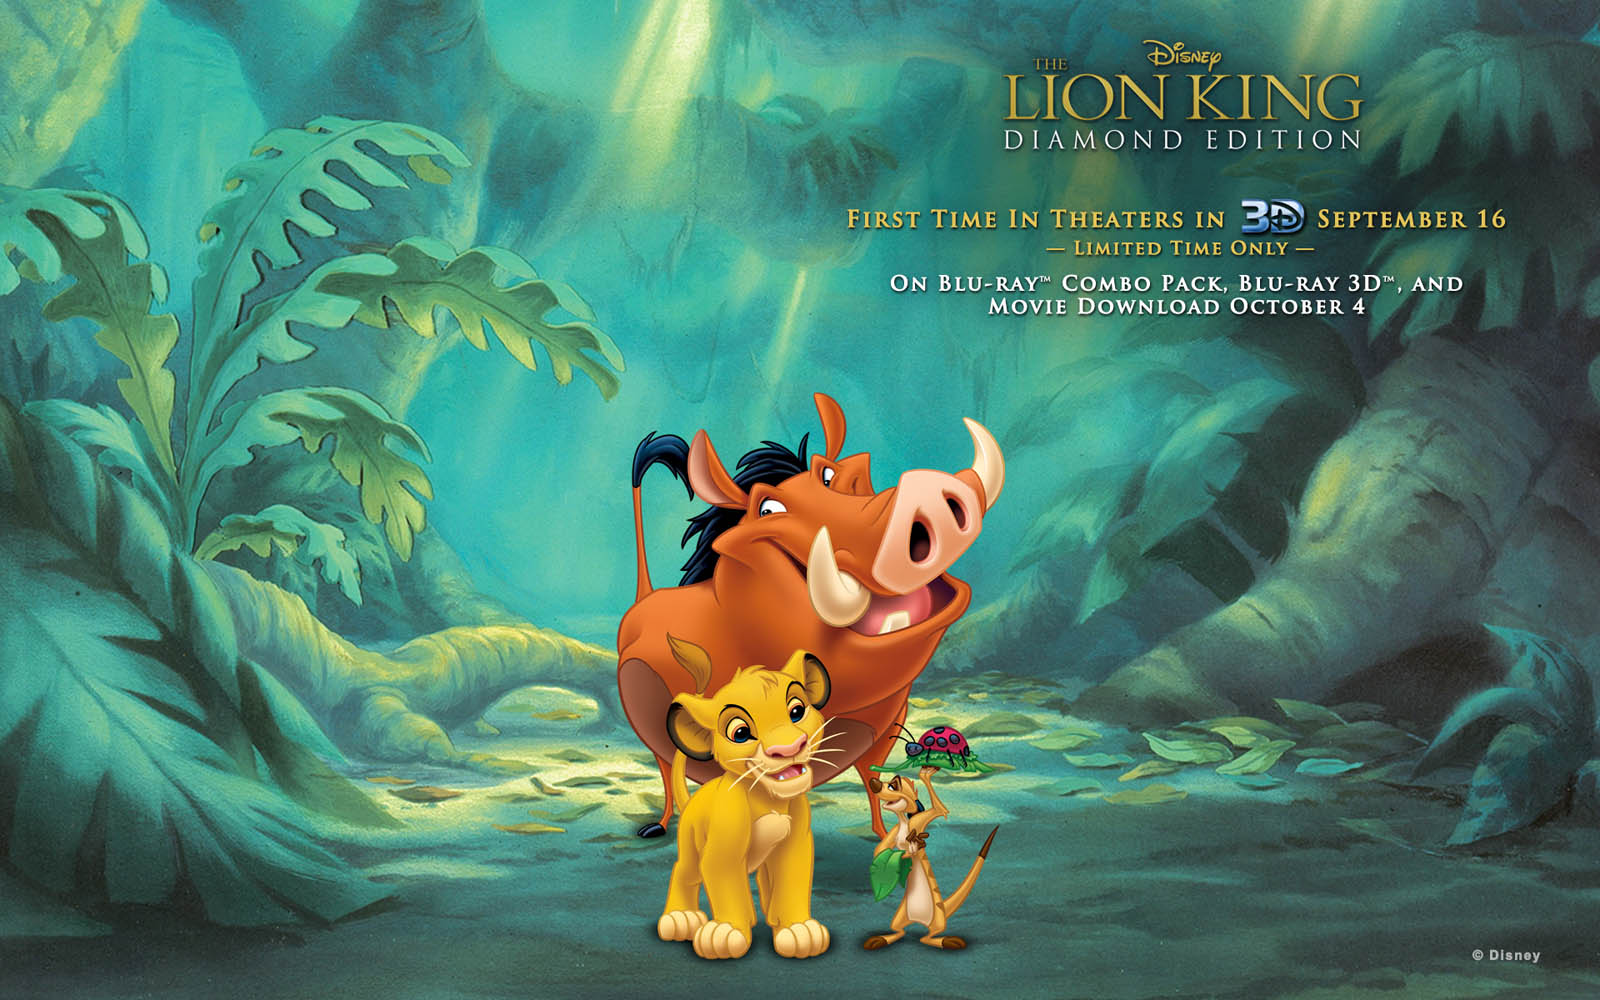 http://3.bp.blogspot.com/-zctT3078FP0/UQux7yCrezI/AAAAAAAASJ8/20FOUPOANcg/s1600/The+Lion+King+Wallpapers+08.jpg